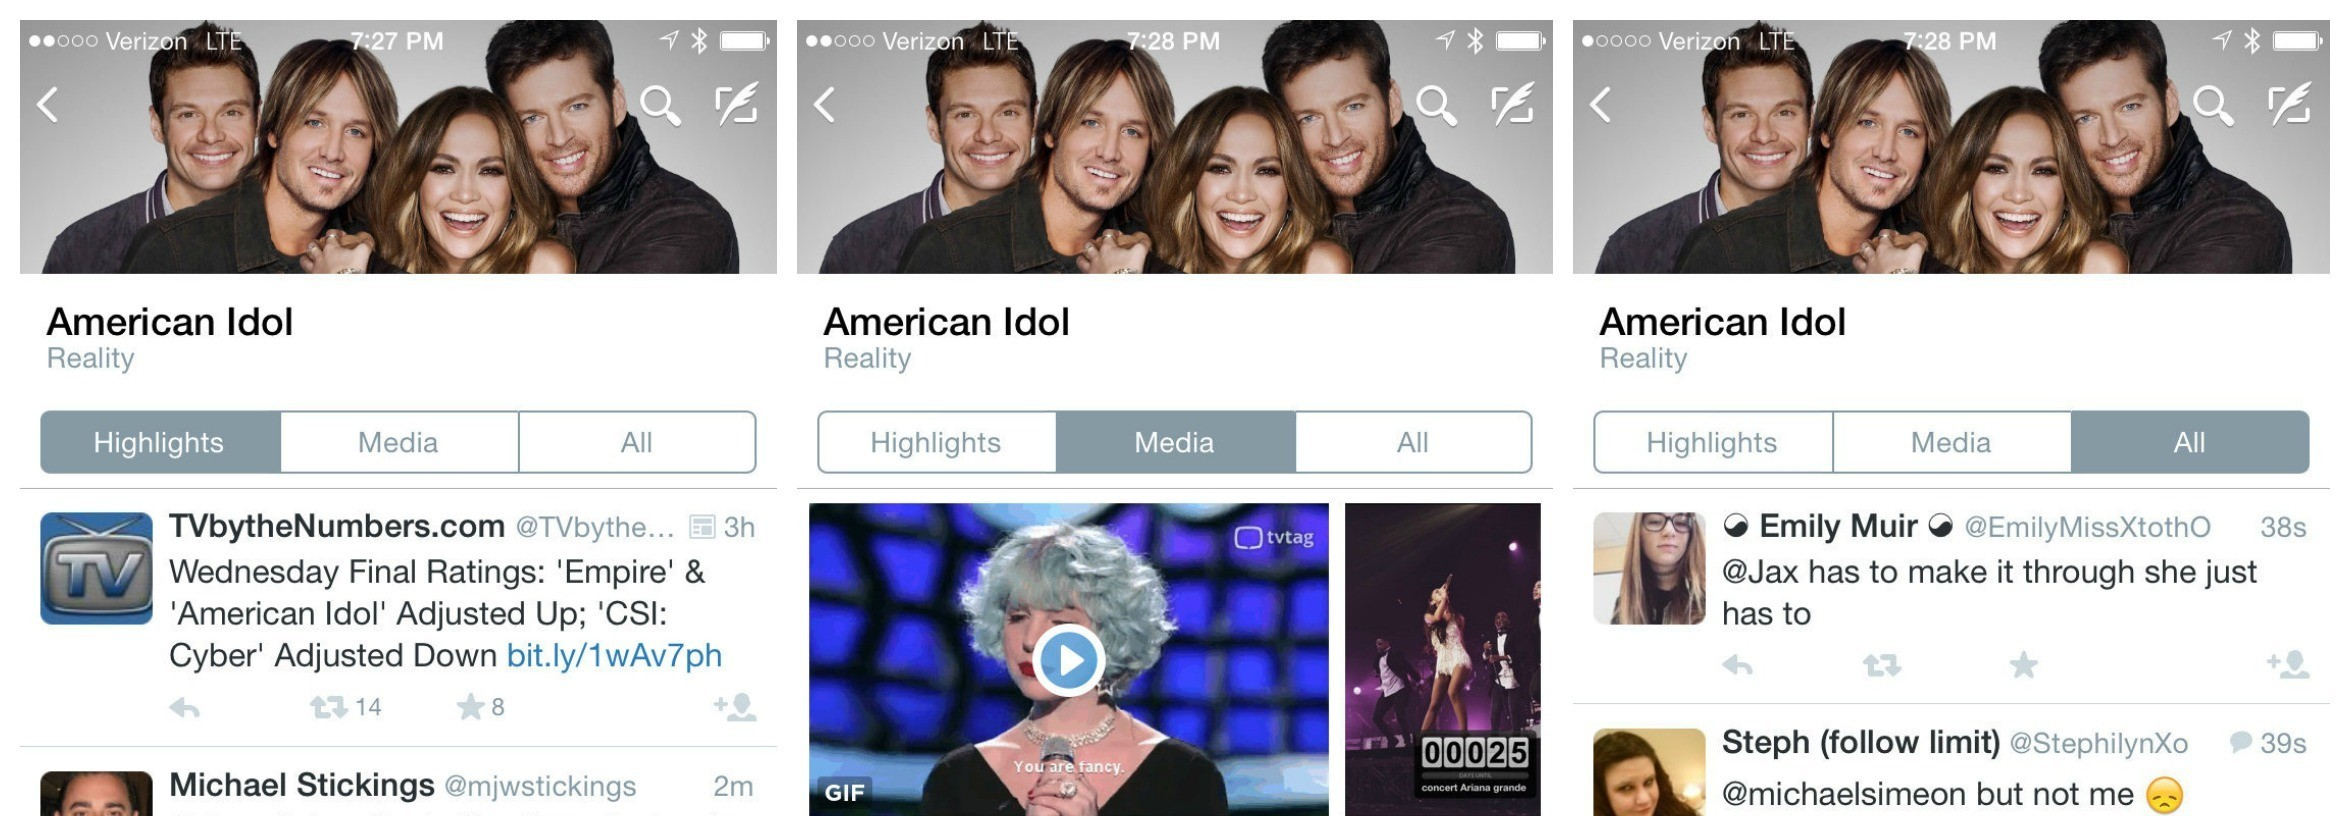 Twitter's Building a Second-screen Experience for TV Shows